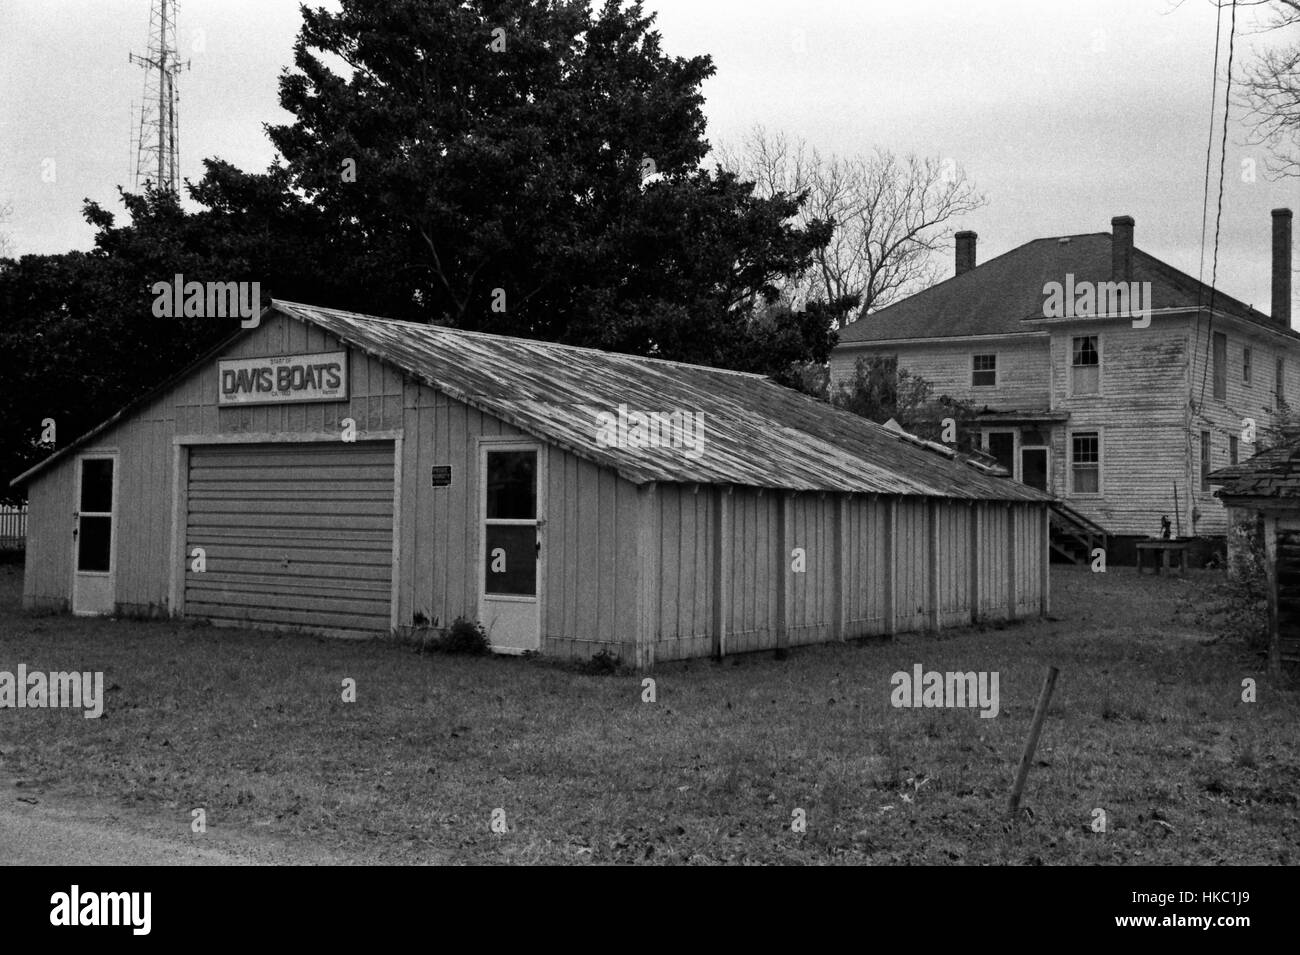 Grainy black and white photo of a boat repair barn behind a house on the Outer Banks in the town of Manteo NC. - Stock Image